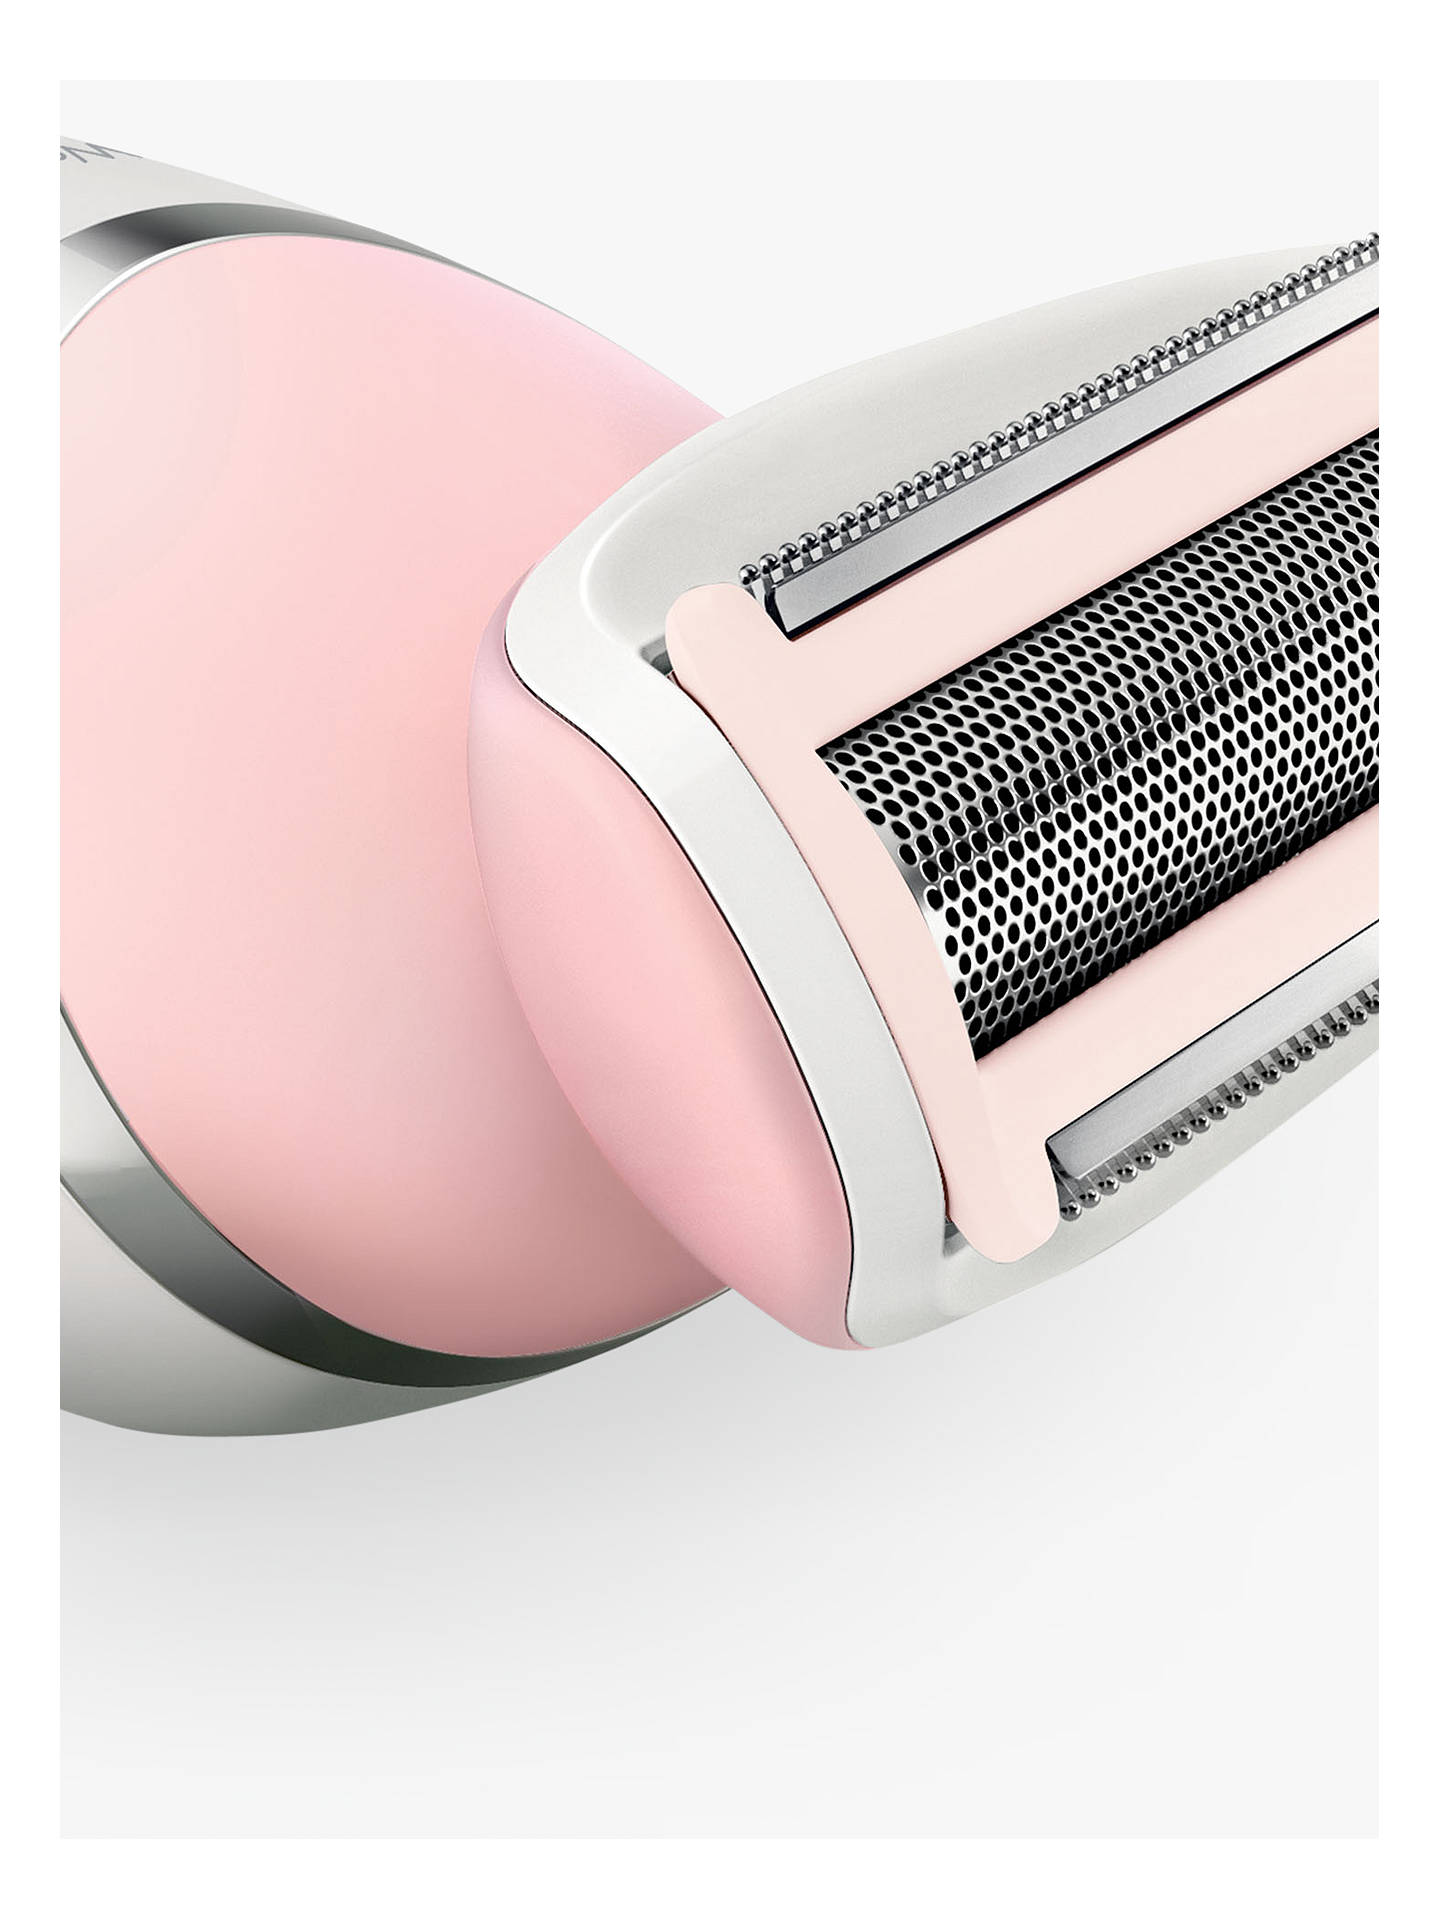 Buy Philips BRL140/00 SatinShave Advanced Wet and Dry Electric Shaver, White/Pink Online at johnlewis.com